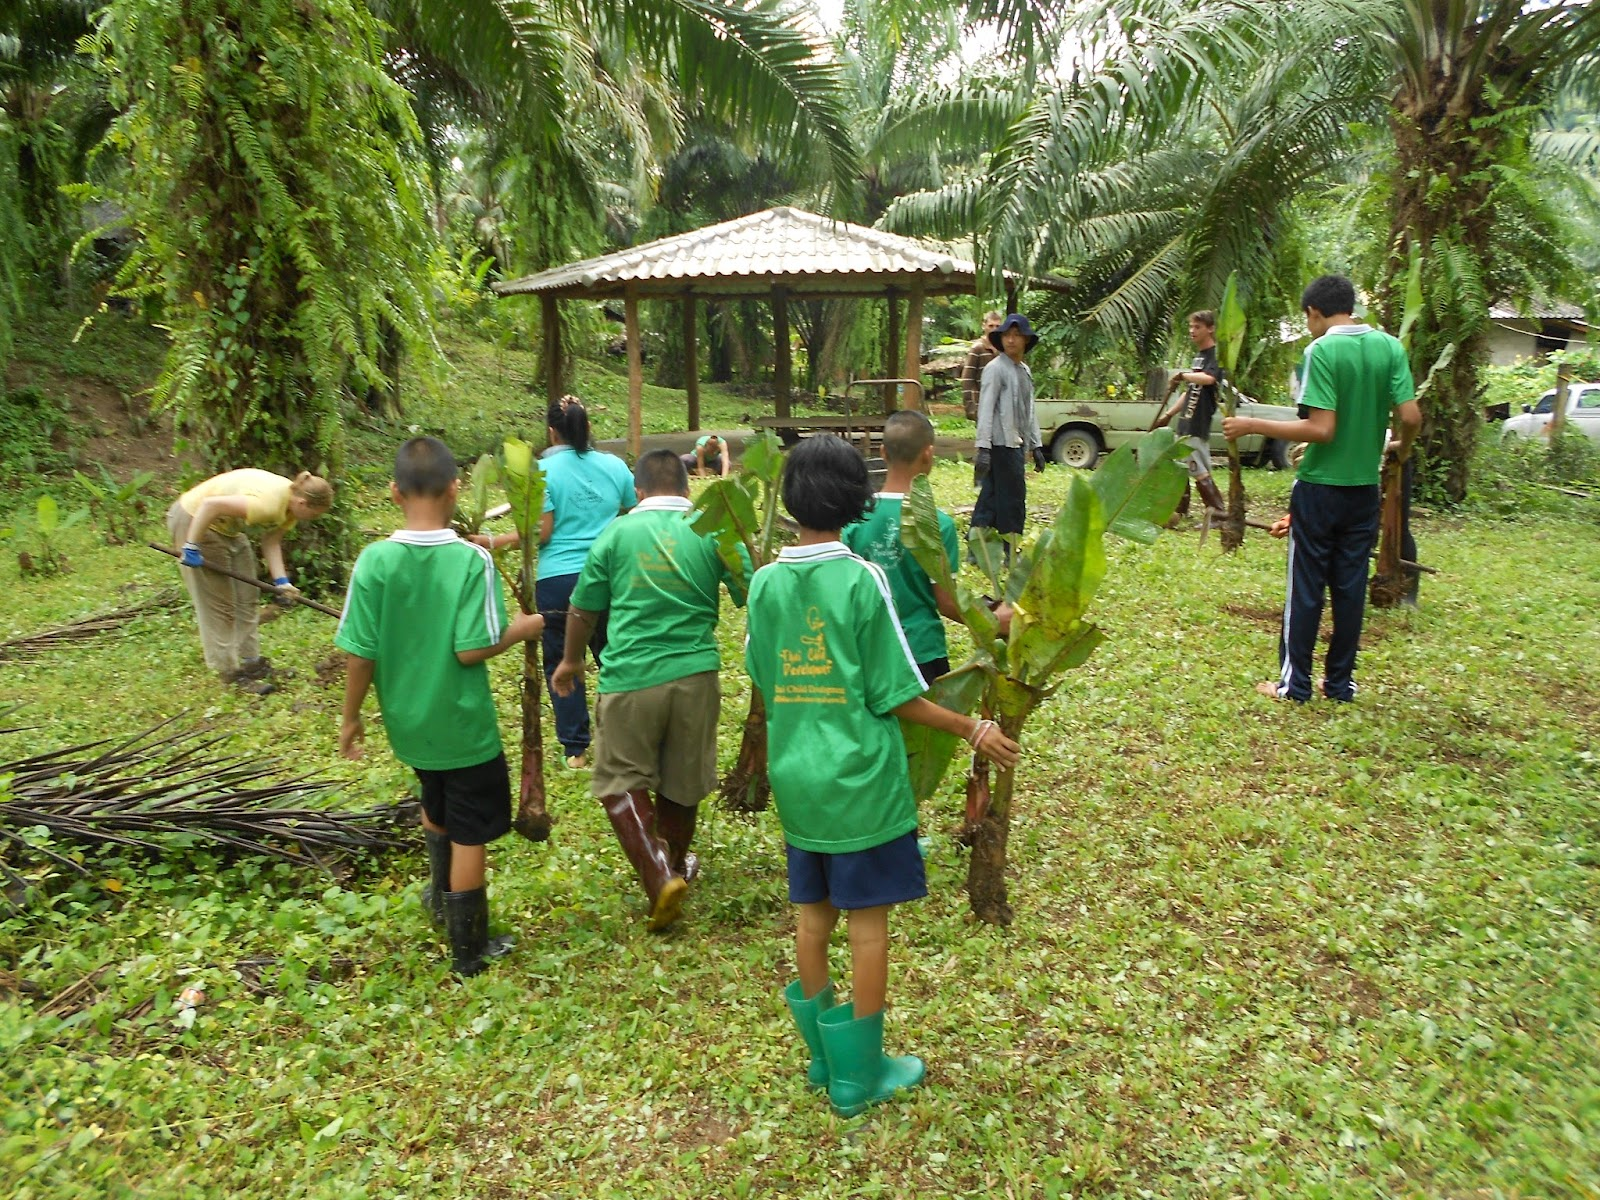 ss-students-farm-plant-bananas-volunteers(2).JPG